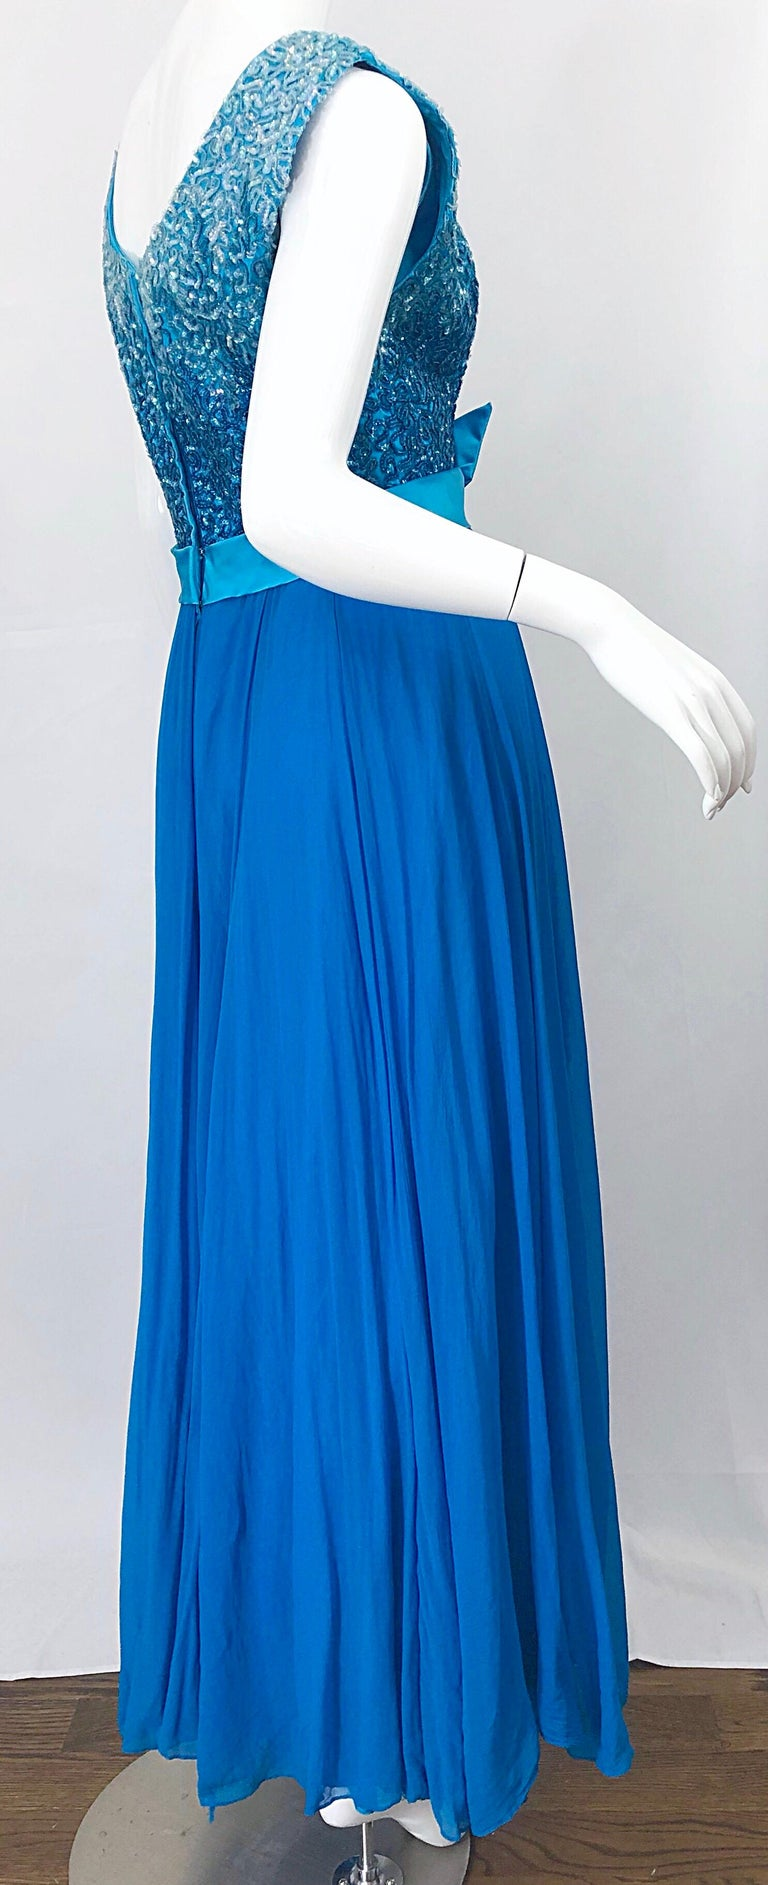 1950s Emma Domb Turquoise Blue Ombre Sequined Silk Chiffon Vintage 50s Gown For Sale 2